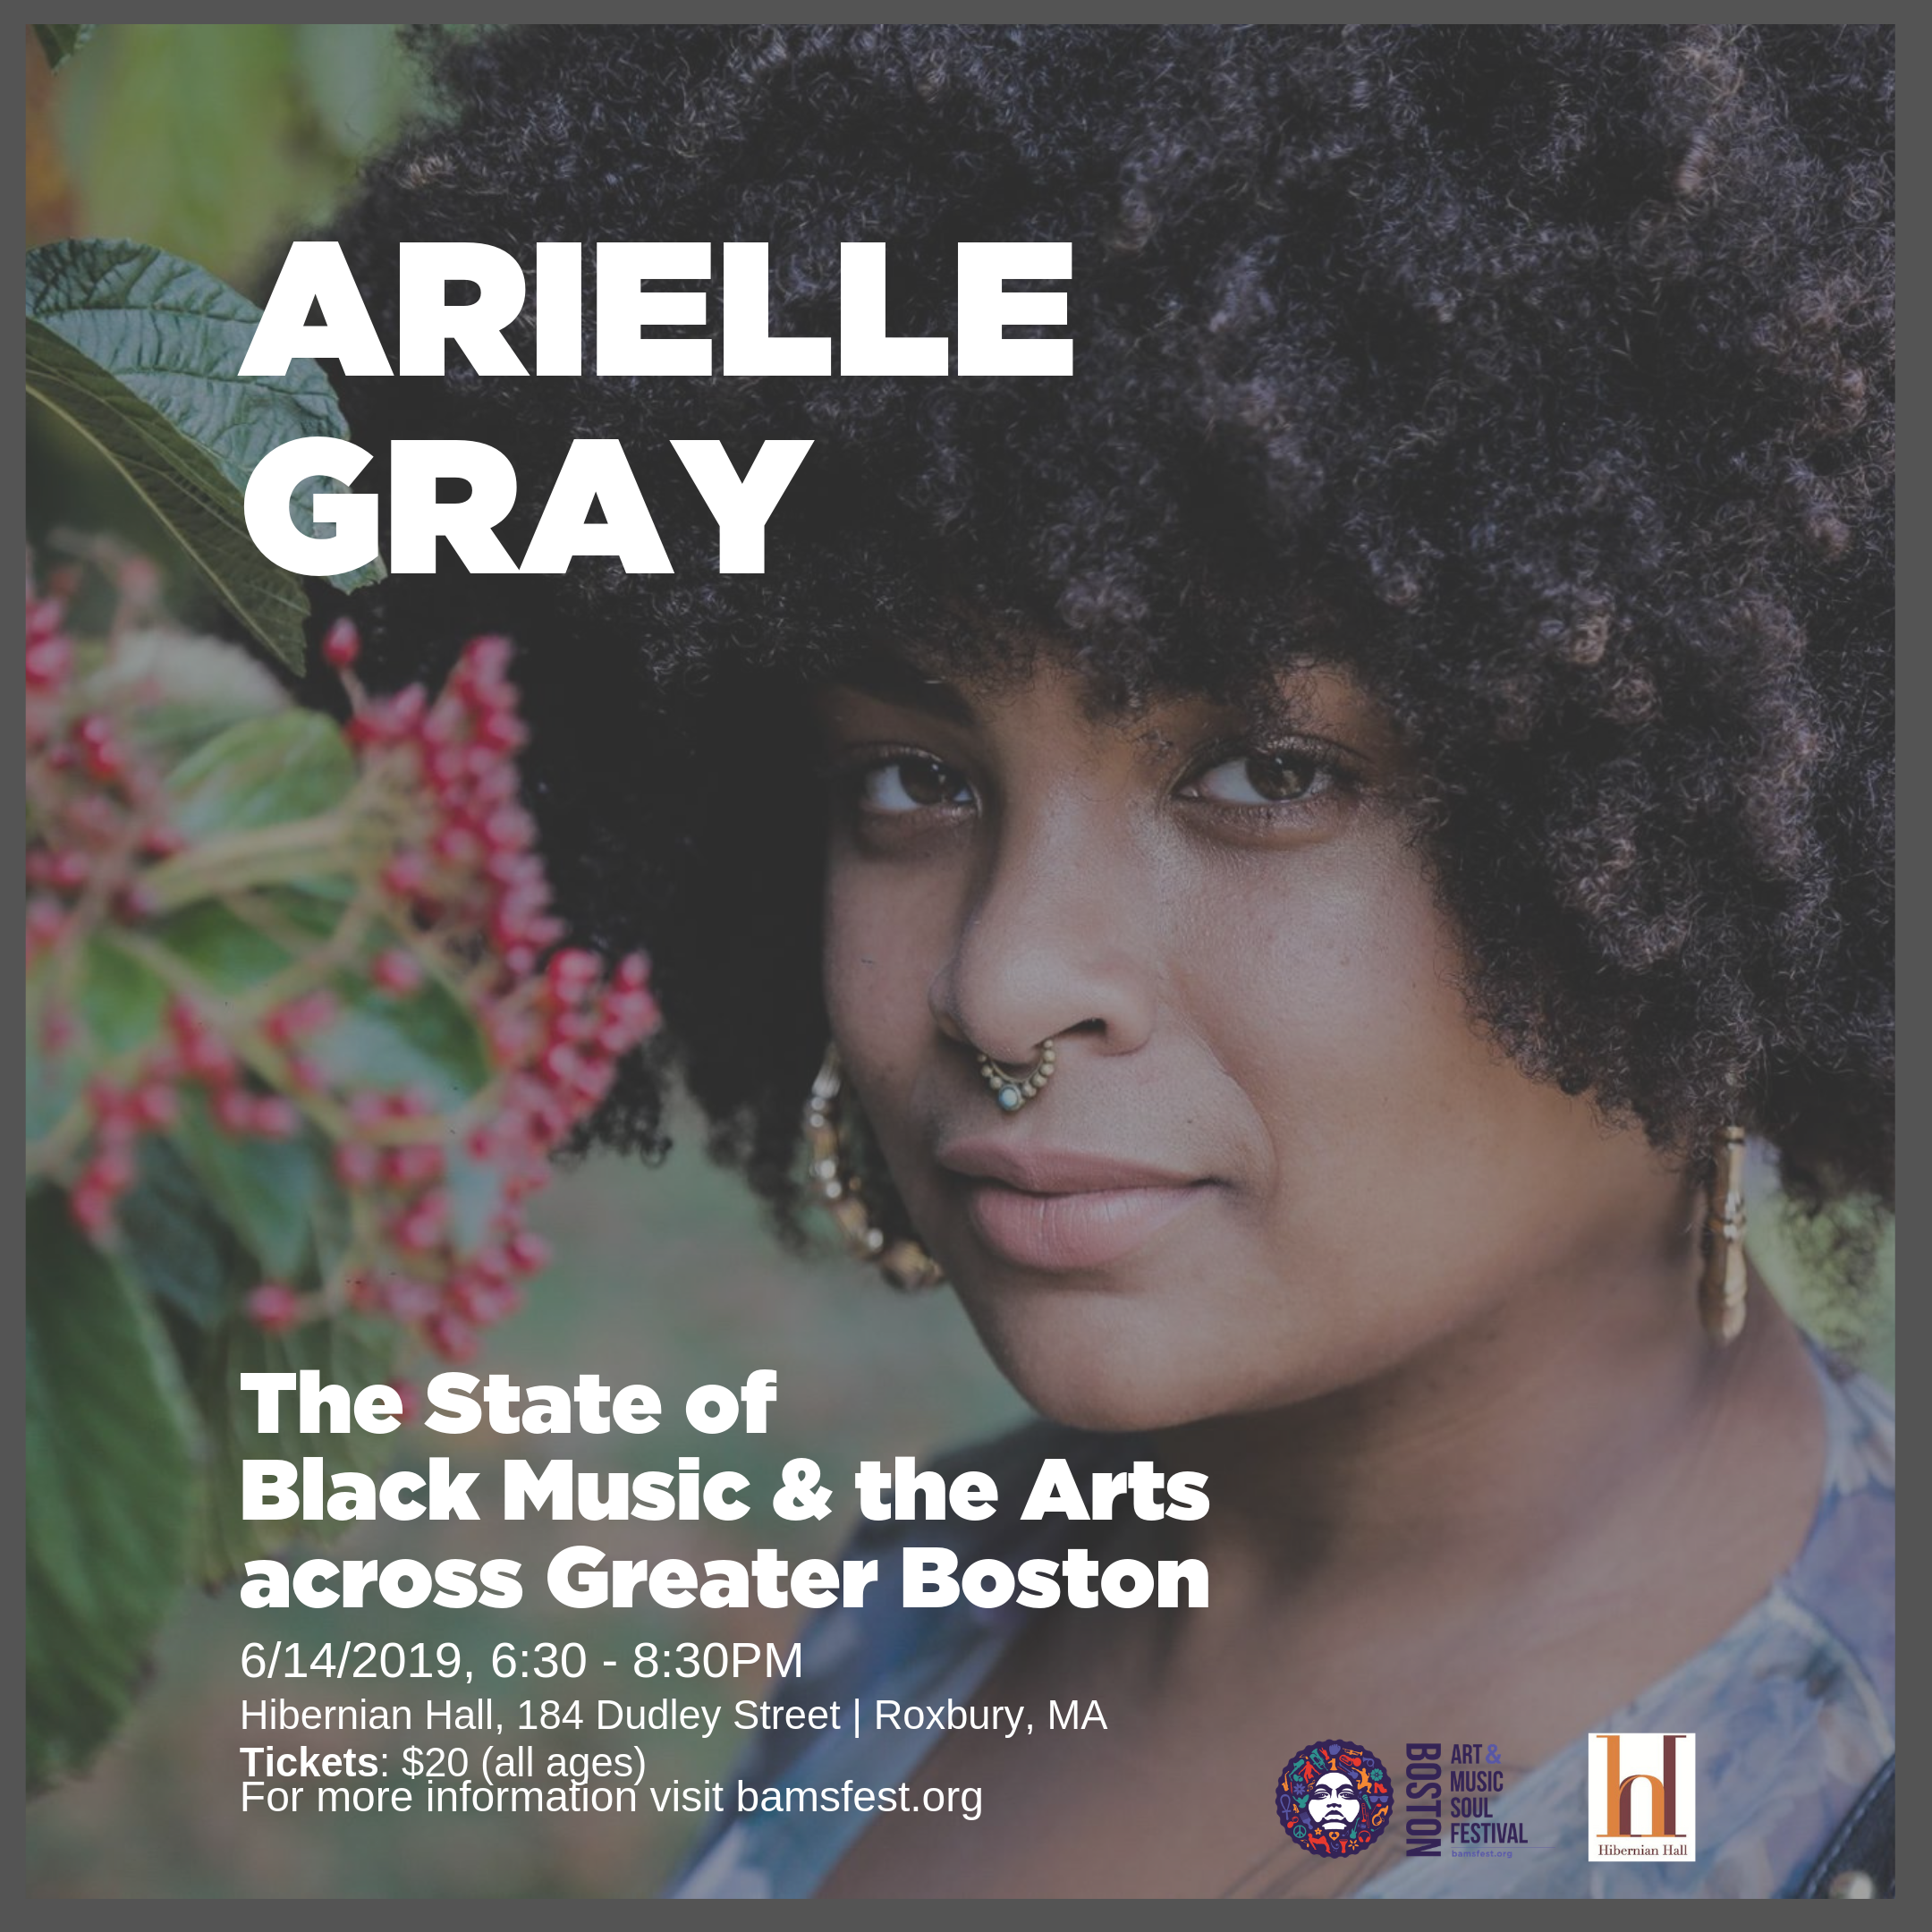 Instagram_6_14_2019 Arielle Gray - Copy.